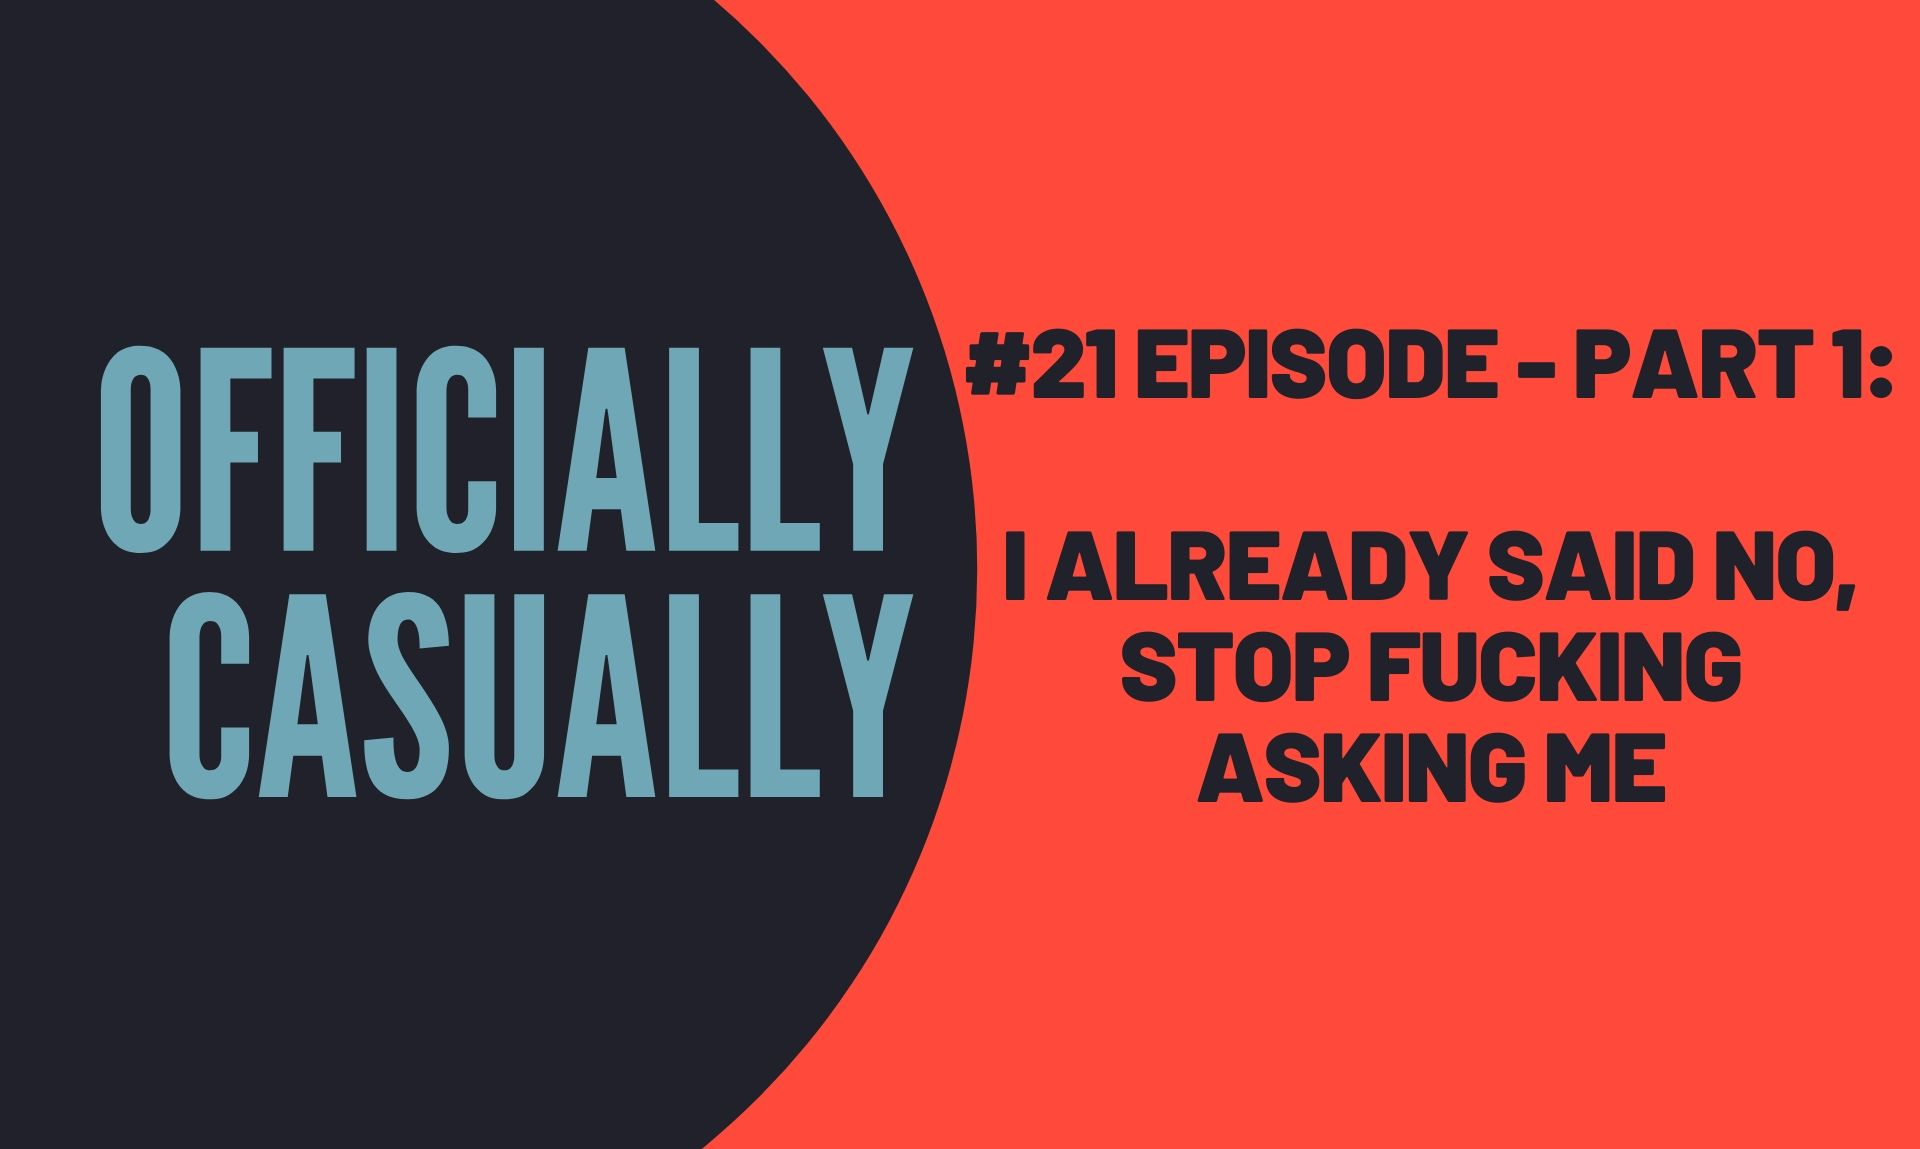 #21 EPISODE - Part 1: I ALREADY SAID NO, STOP FUCKING ASKING ME